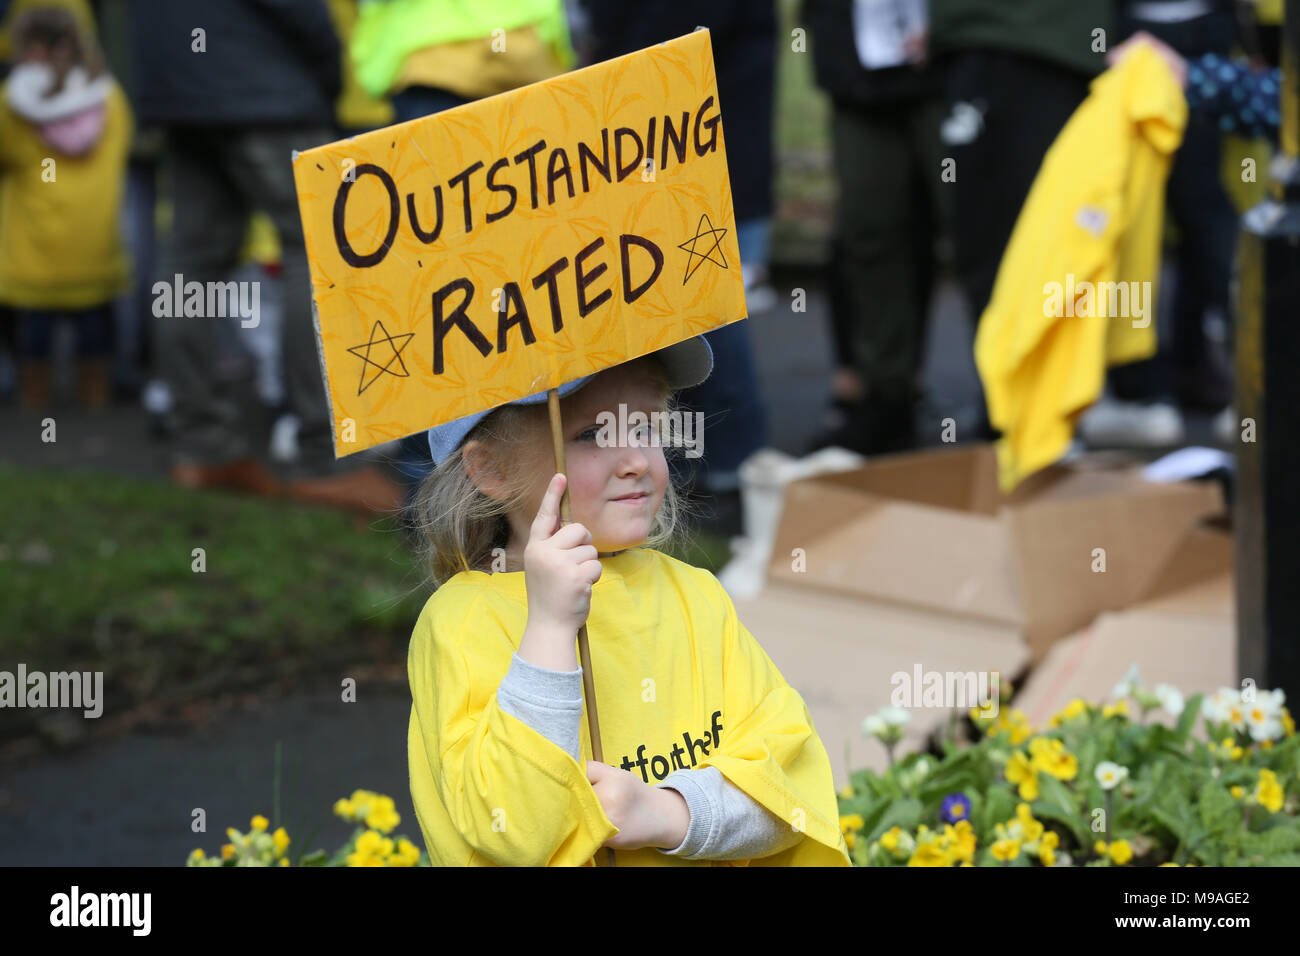 """Salford, UK. 24th March, 2018. A girl holding a sign which reads """"Outstanding rated"""" referring to the schools threatened with closure, Swinton, Salford, 24th March, 2018 (C)Barbara Cook/Alamy Live News Stock Photo"""